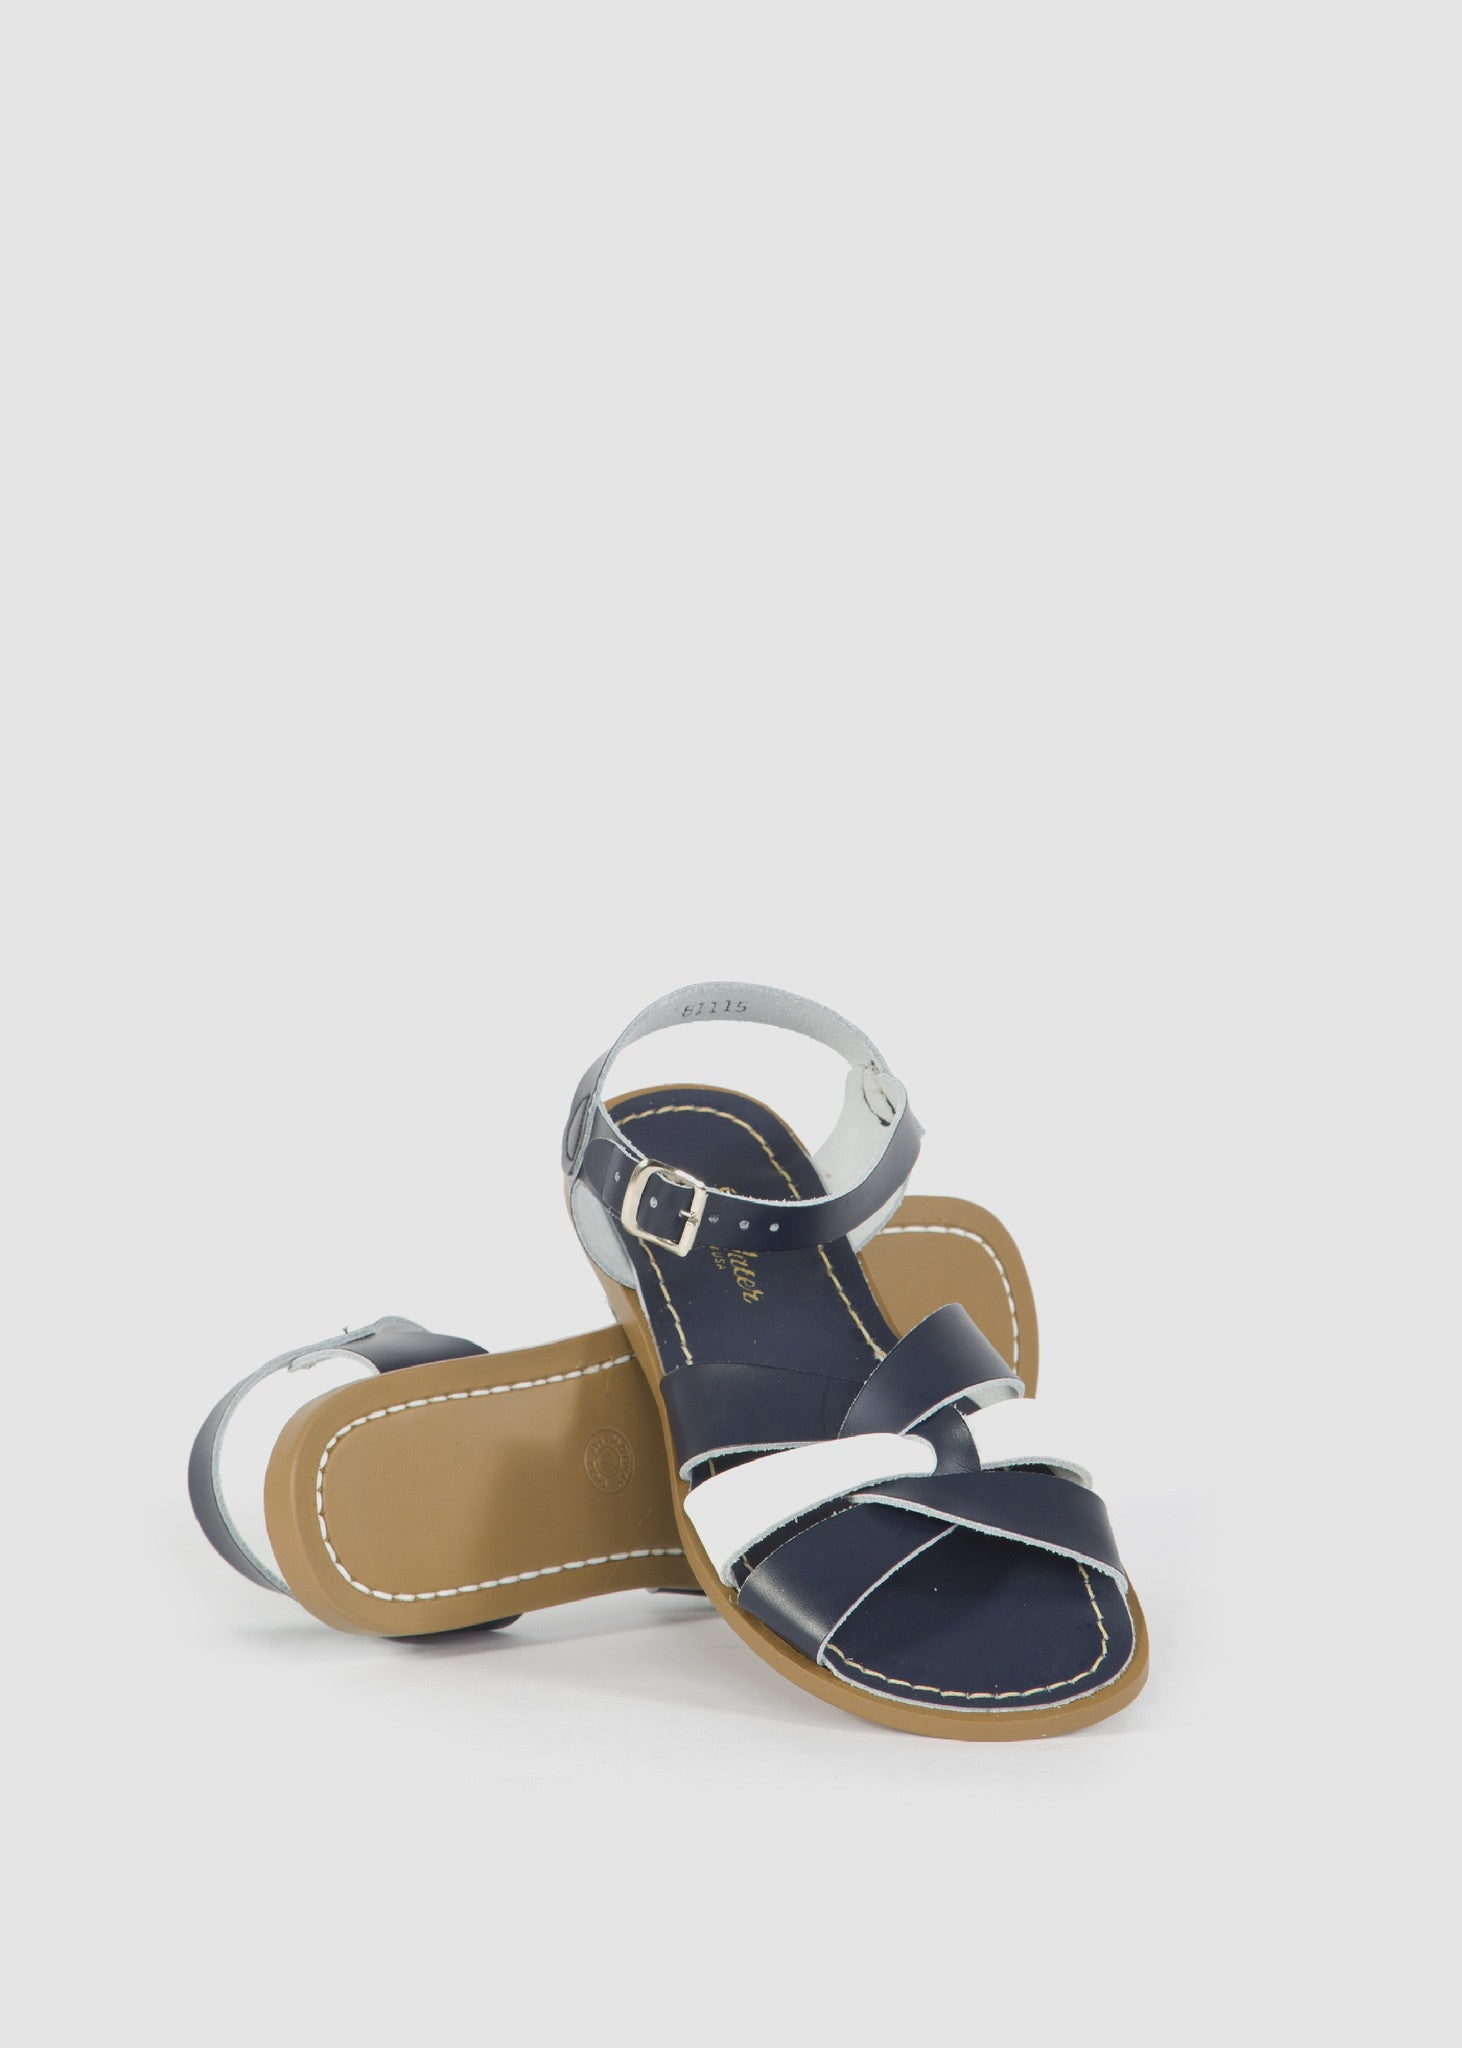 Sandal Navy/White Mix